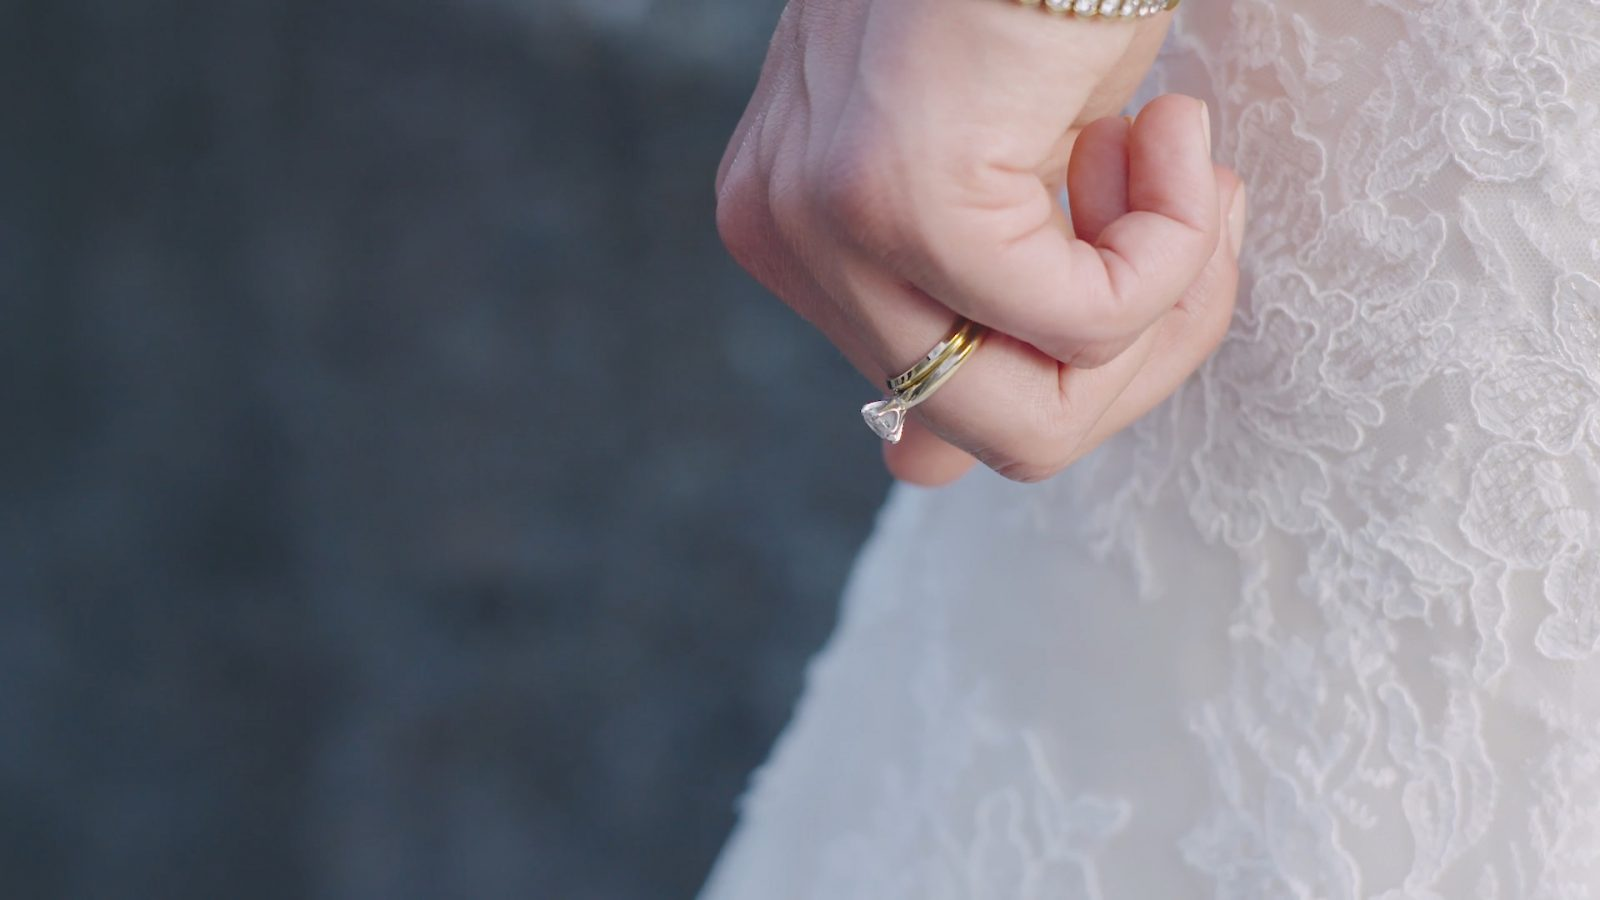 A wedding ring on a brides hand